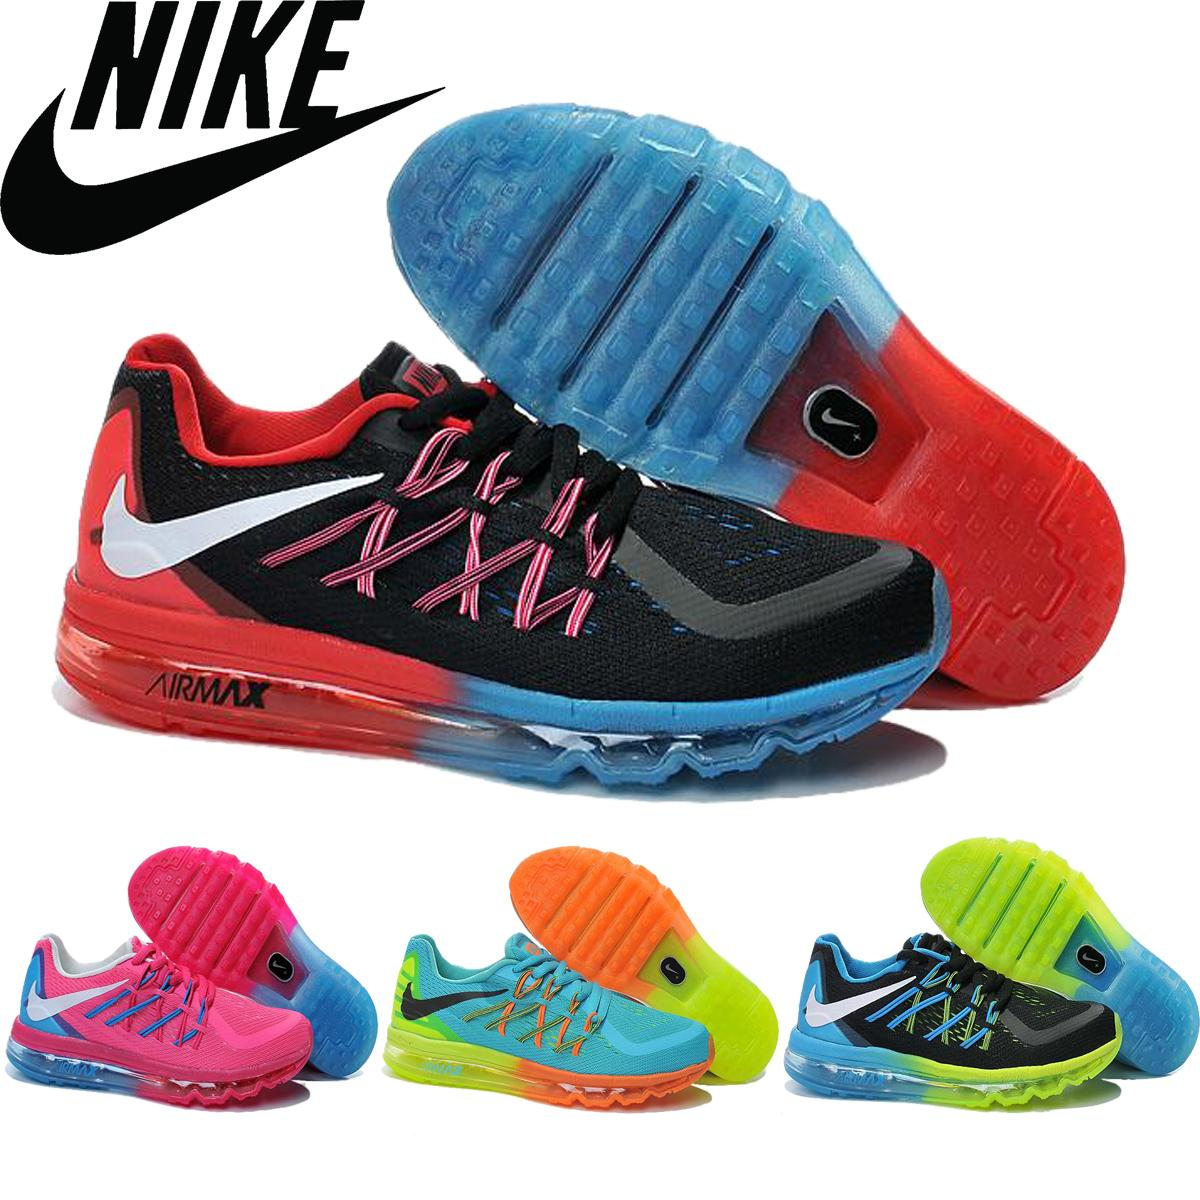 Nike Air Max 2016 Childrens Shoes Boys Girls Running Shoes ...